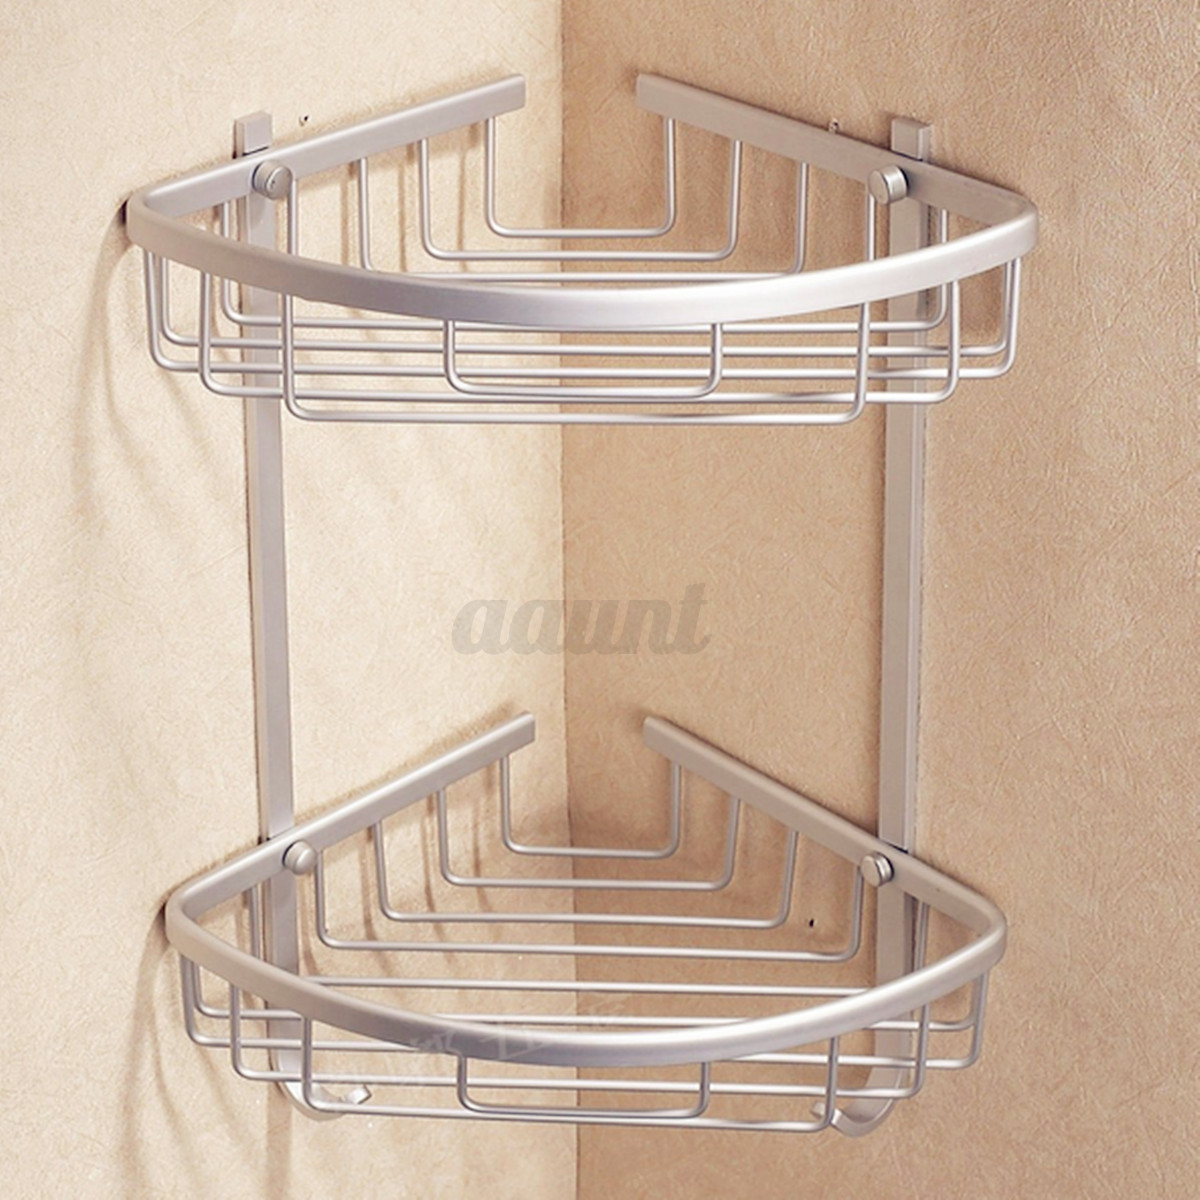 3 layer triangular shower shelf bathroom corner bath rack. Black Bedroom Furniture Sets. Home Design Ideas